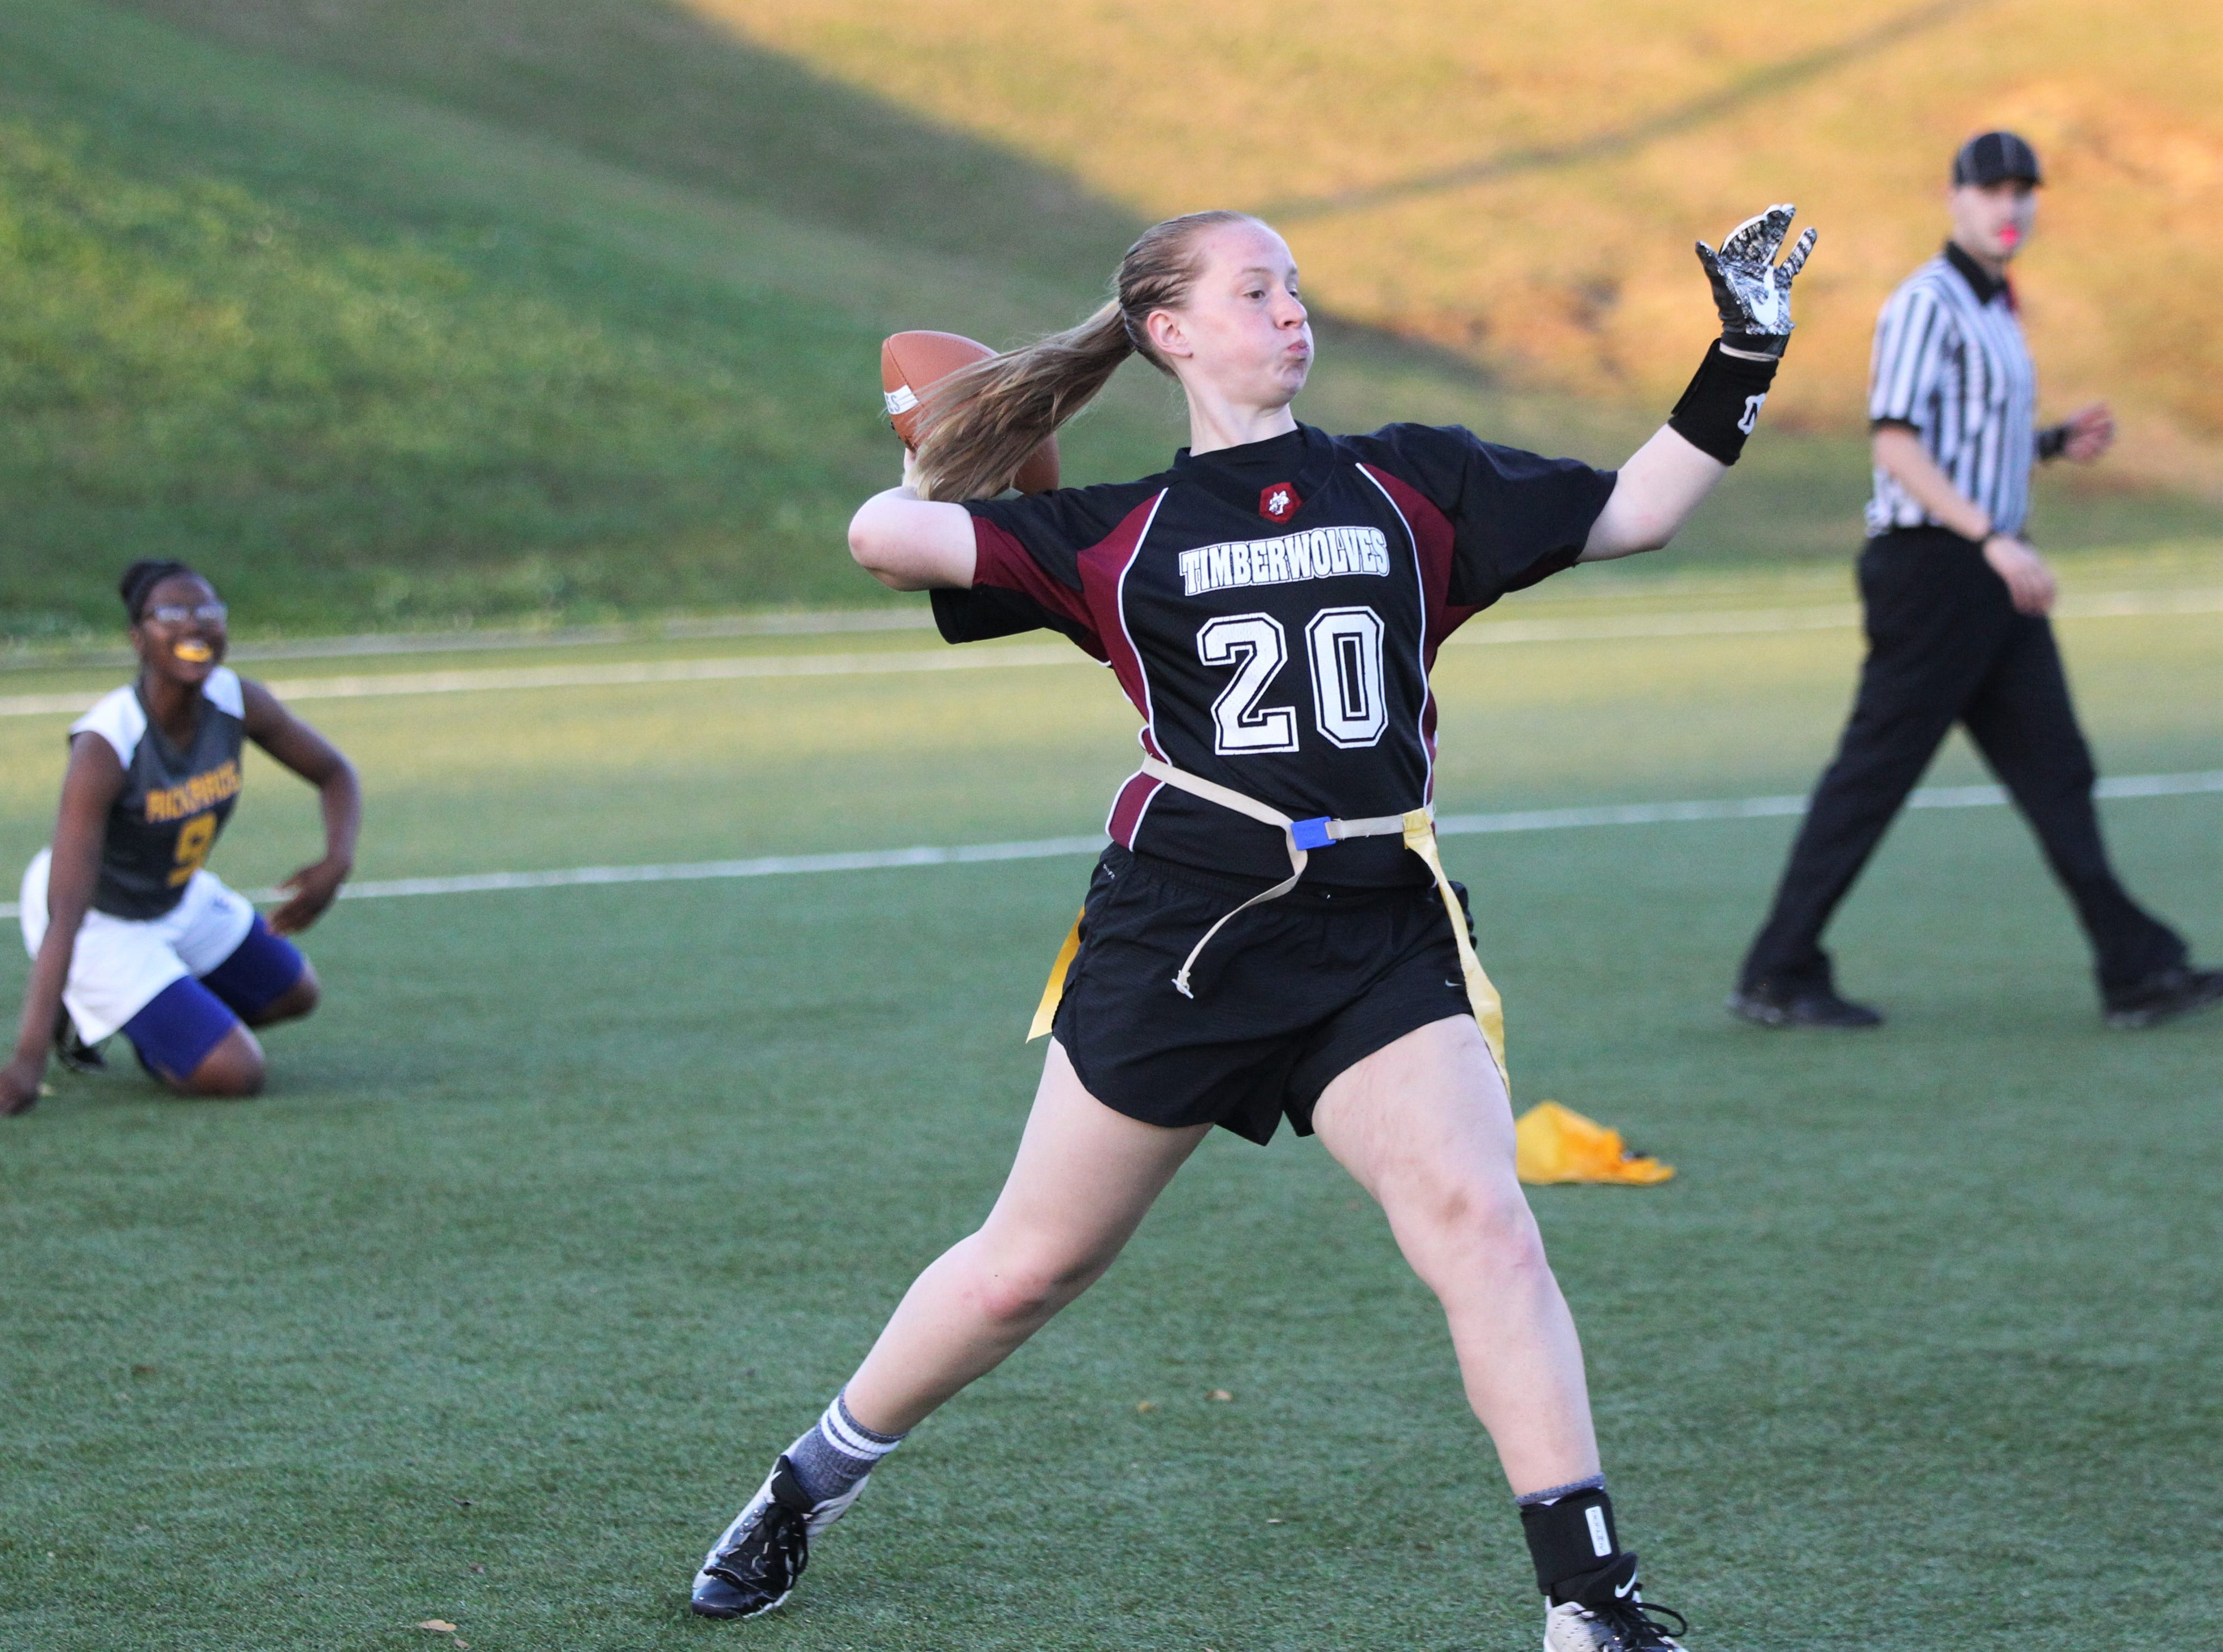 Chiles quarterback Samantha Wilson throws a pass as the Timberwolves and Rickards play during the 2019 flag football preseason classic at Florida A&M's intramural turf fields on Feb. 27, 2019.